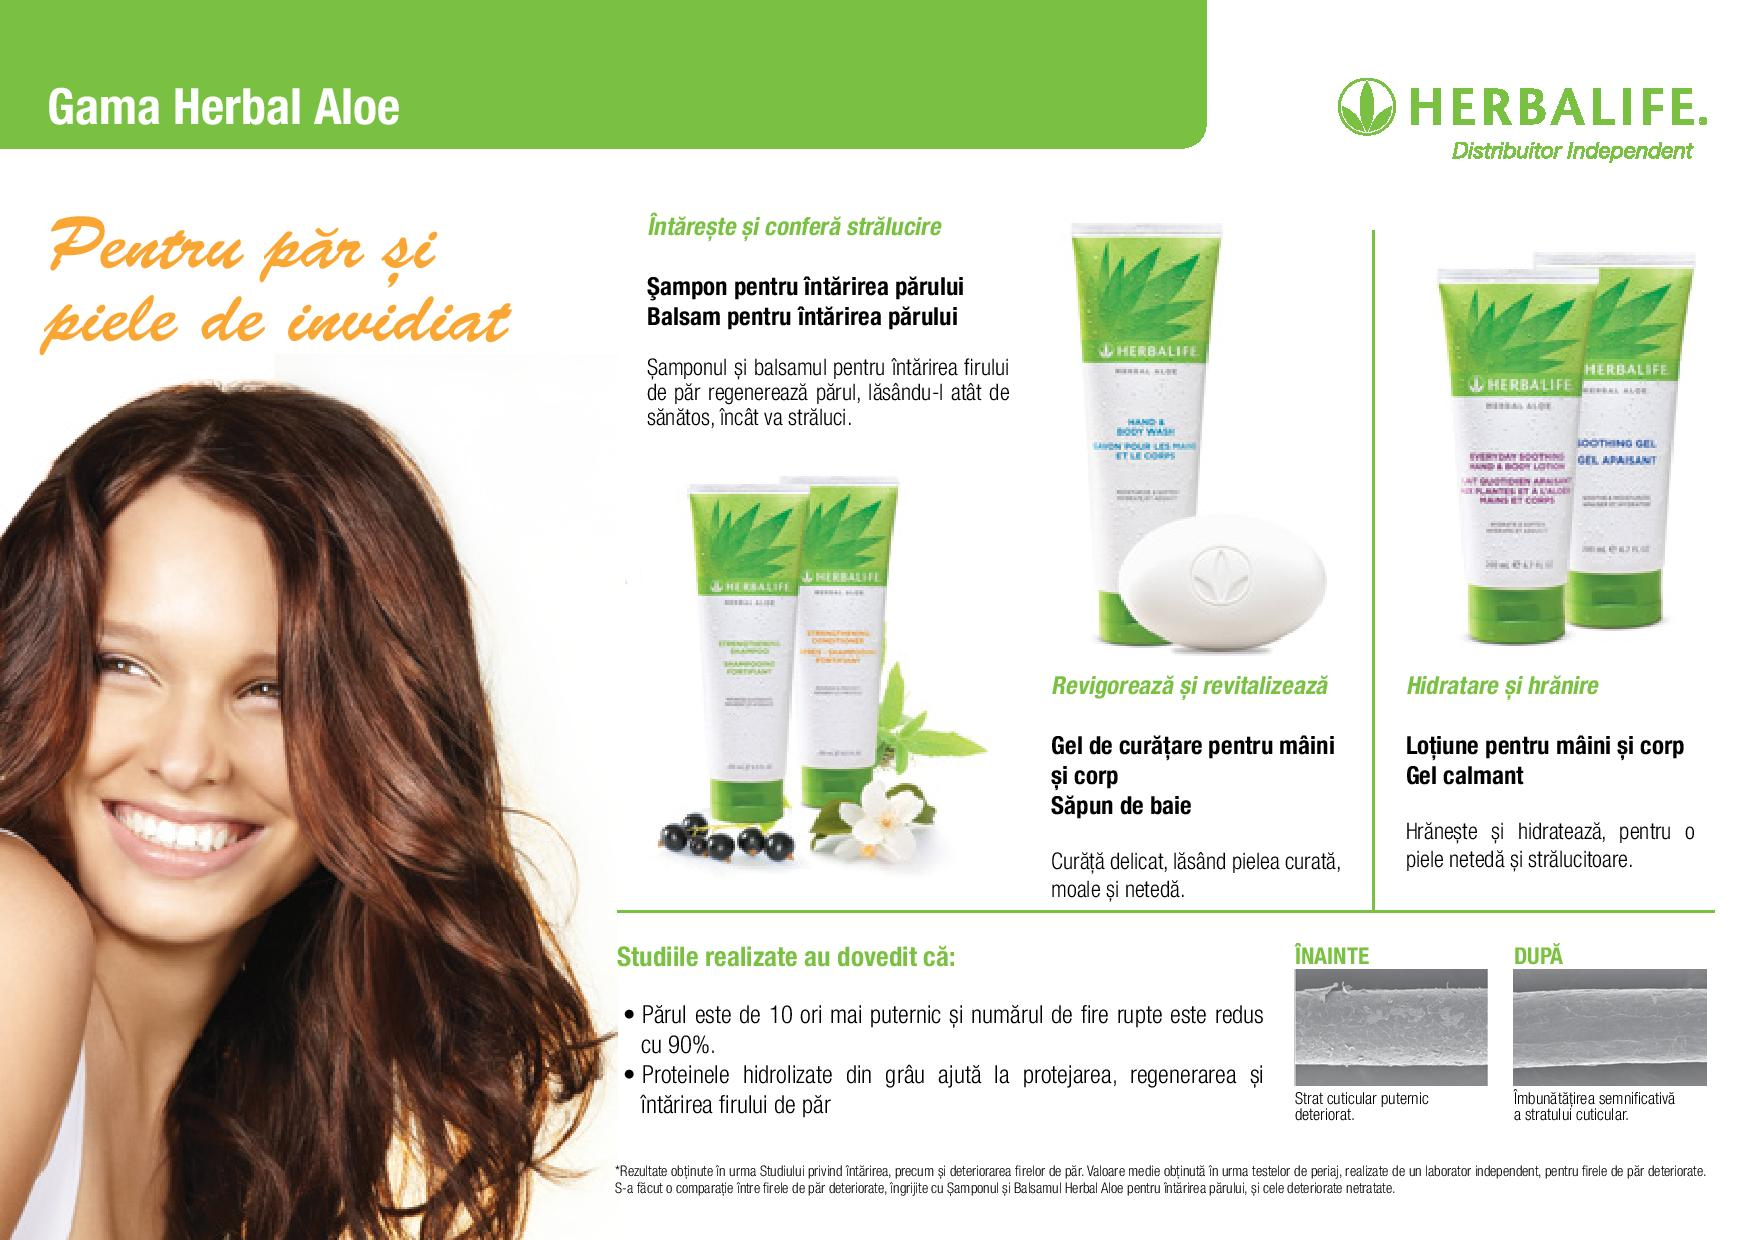 gama herbal aloe